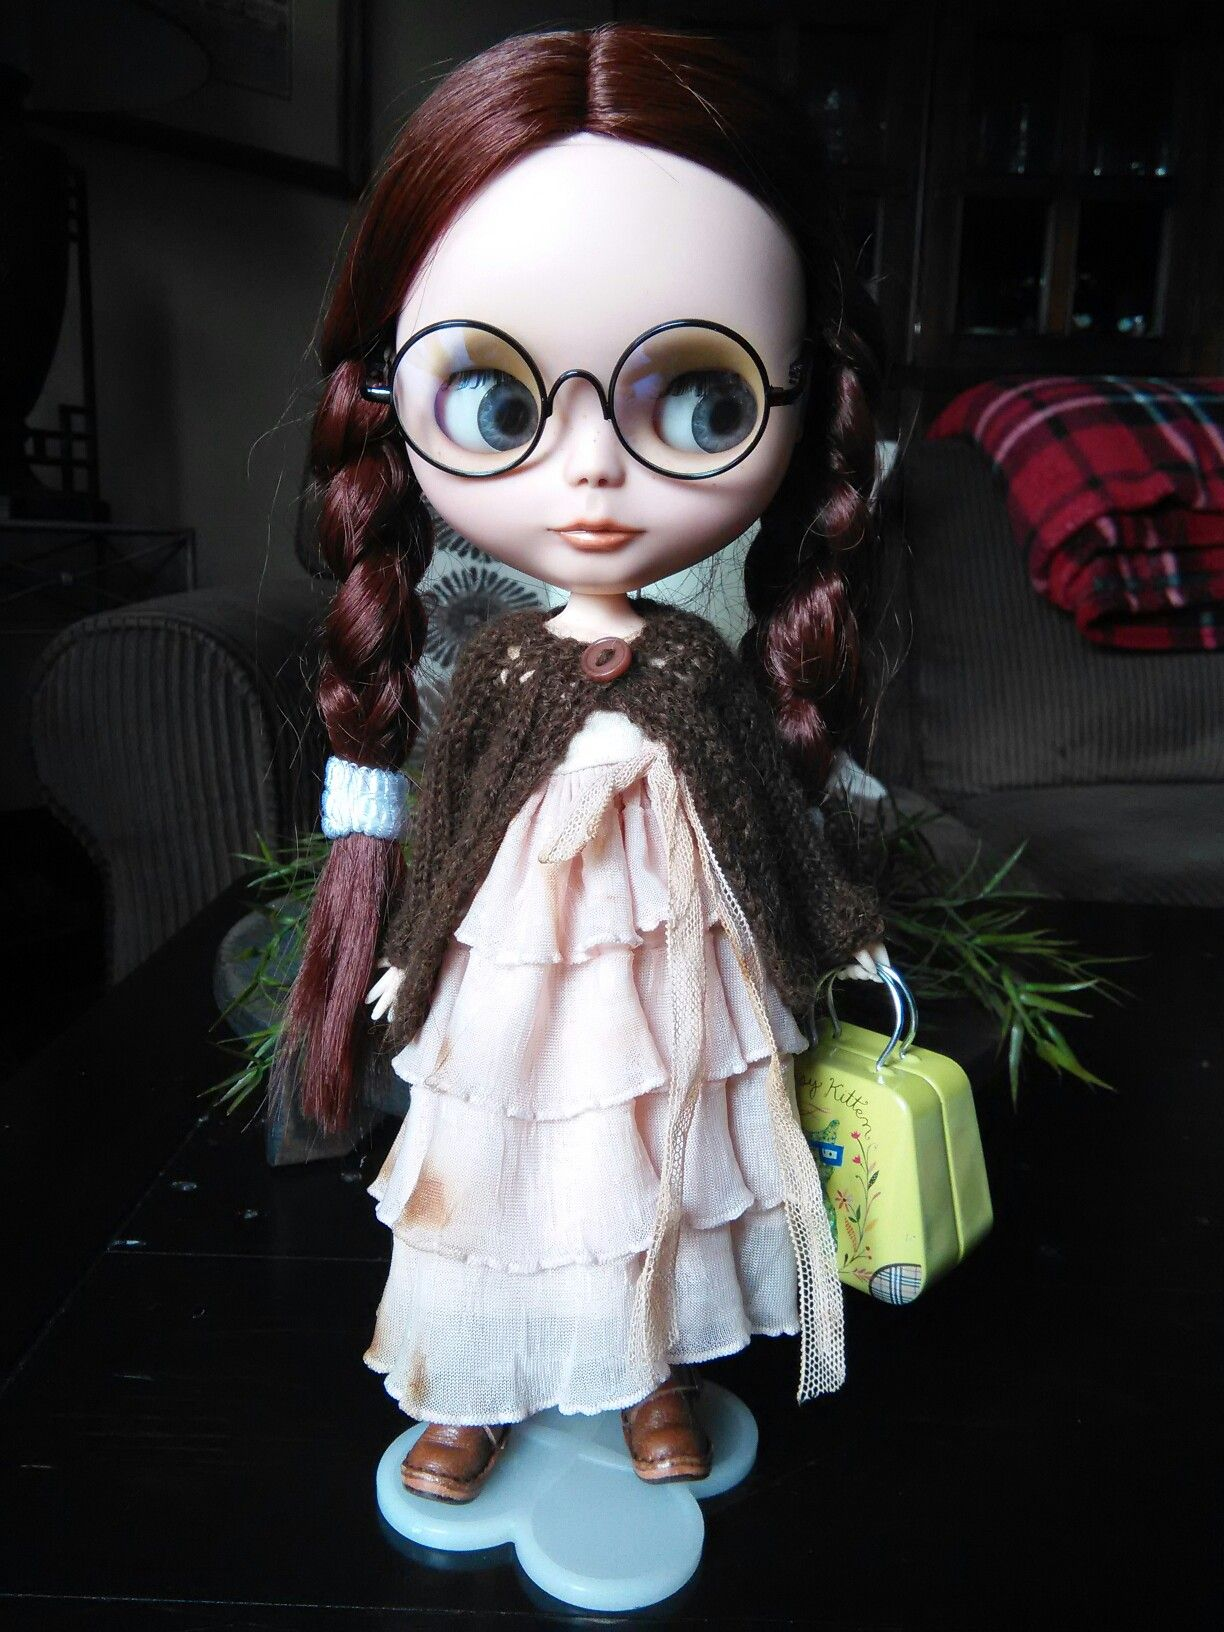 Such a cutie custom blythe doll wearing glasseste outfit too